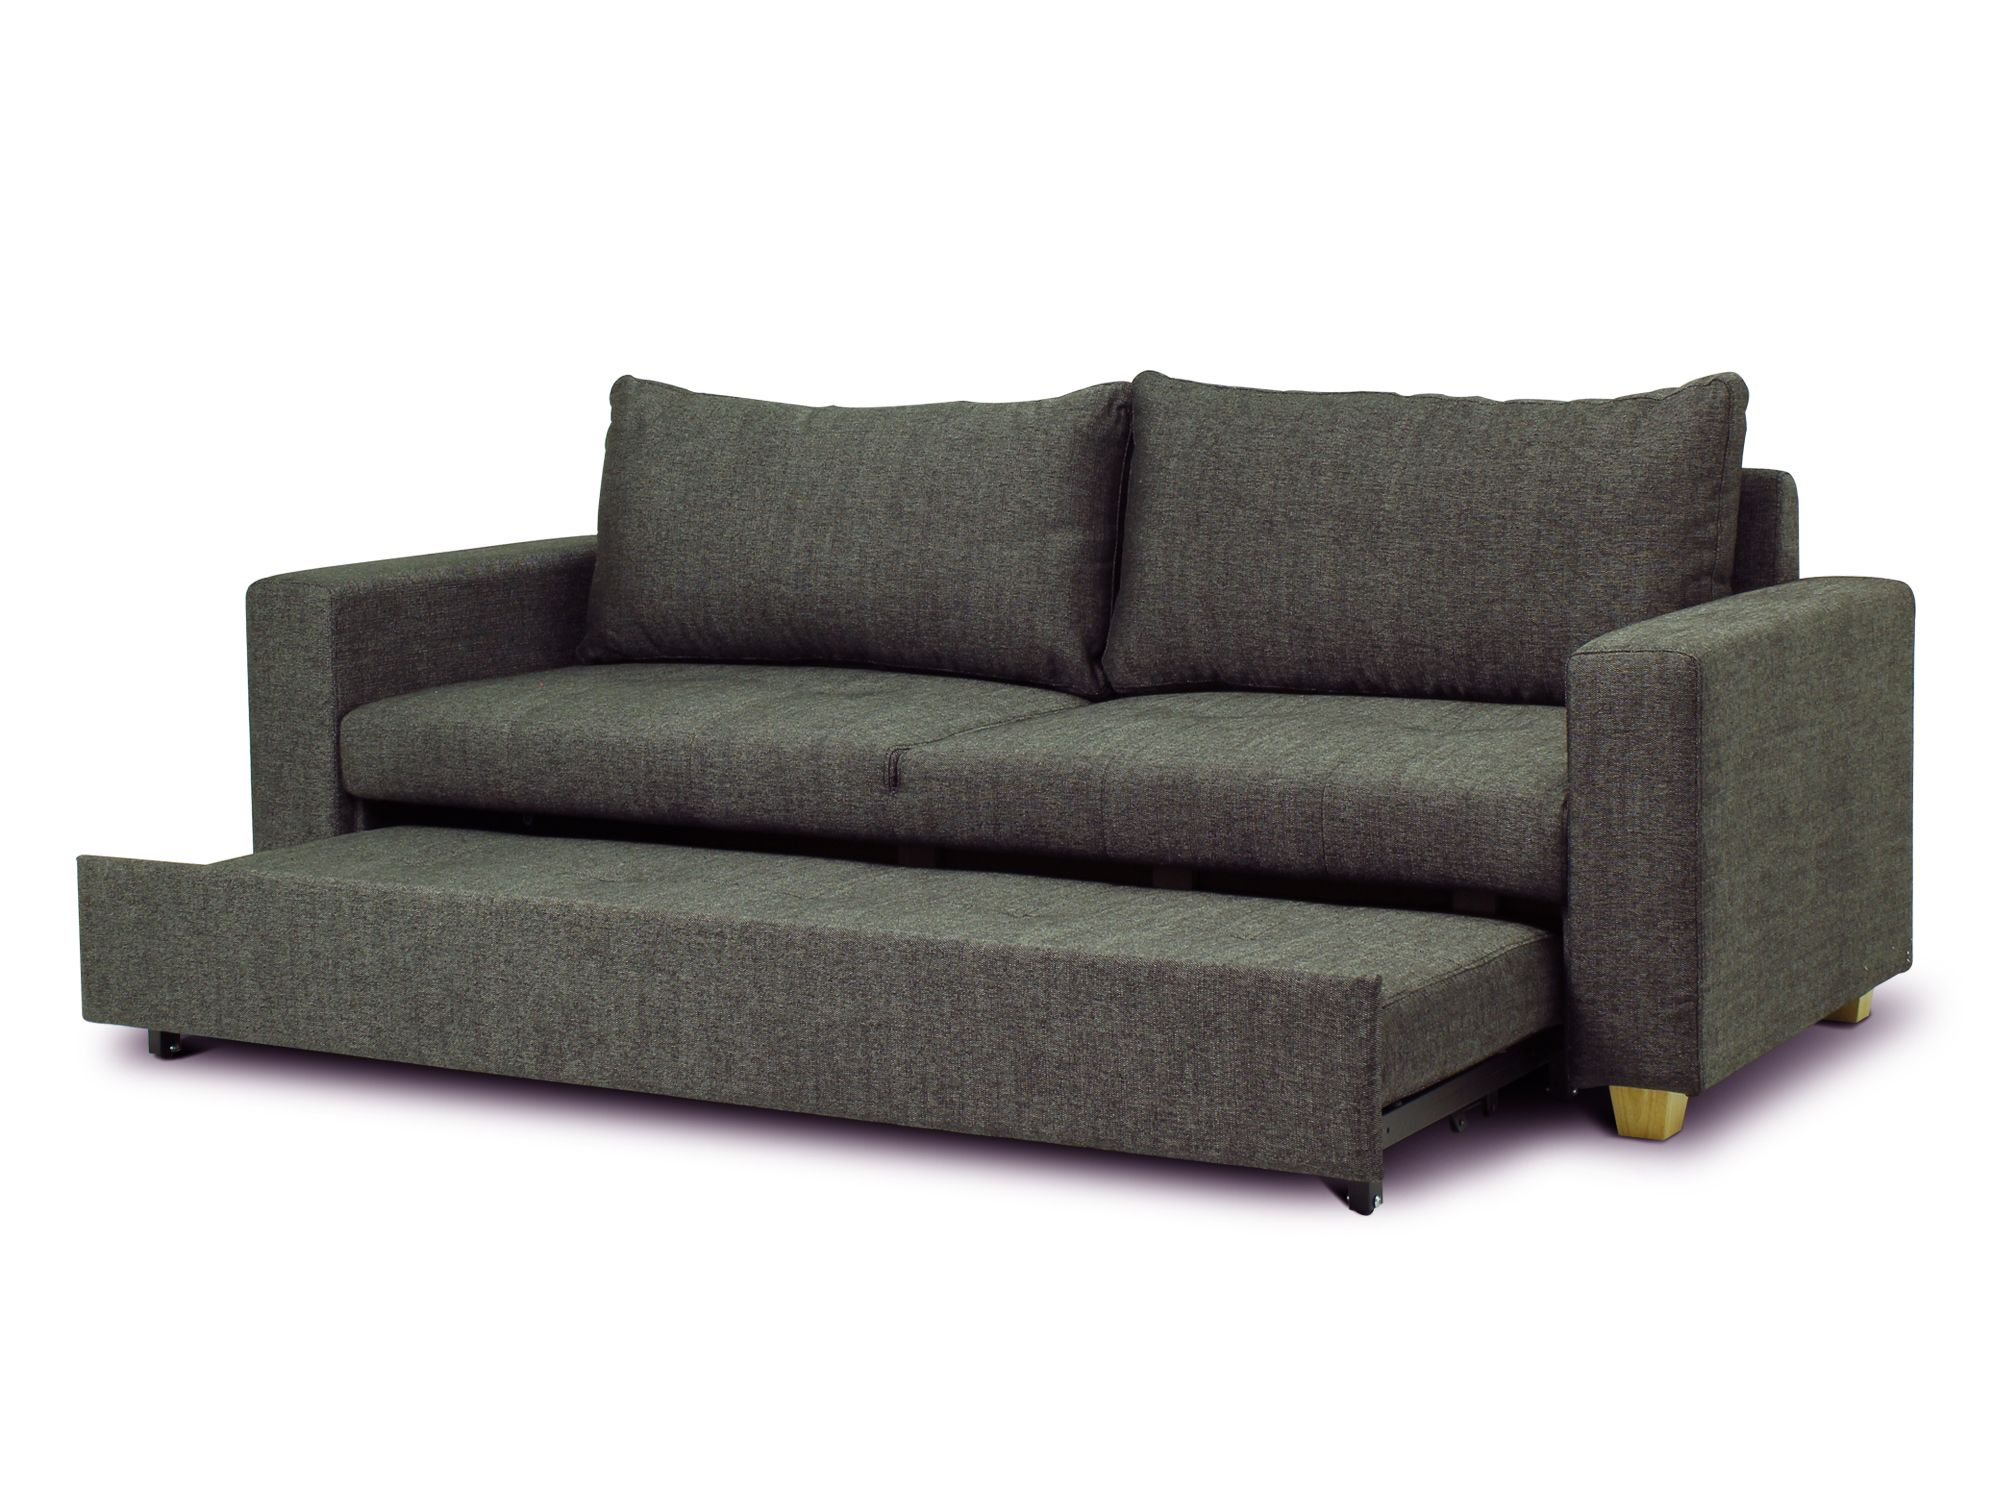 Have You Ever Struggled To Find E For Your Last Minute Guests The Chicago Sofa Bed Is Perfect Solution A Tidy And Compact